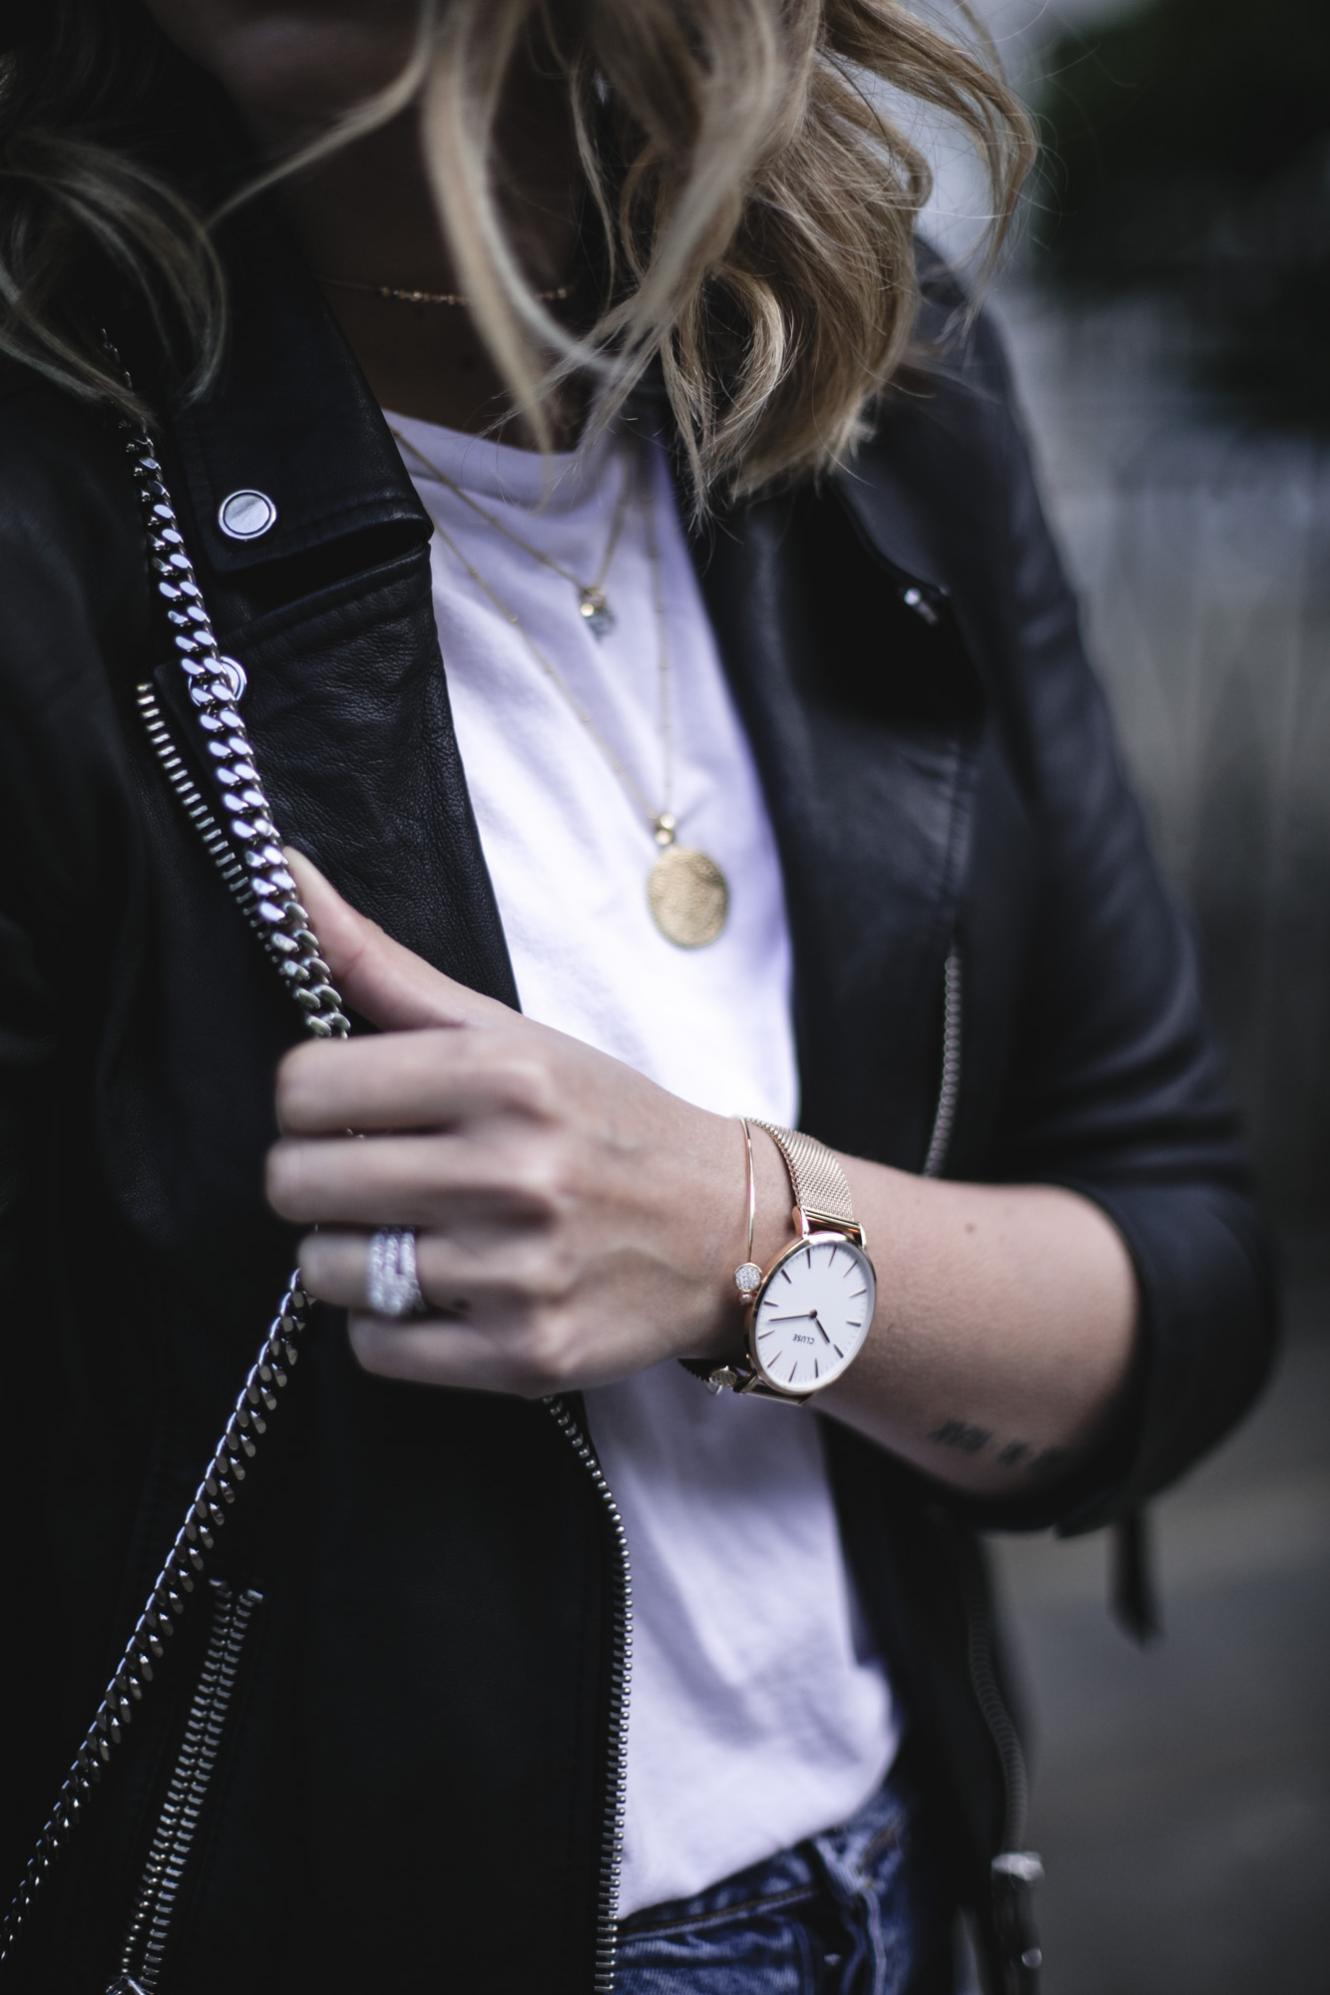 Emma Hill wears layered gold necklaces, white t-shirt, black biker jacket